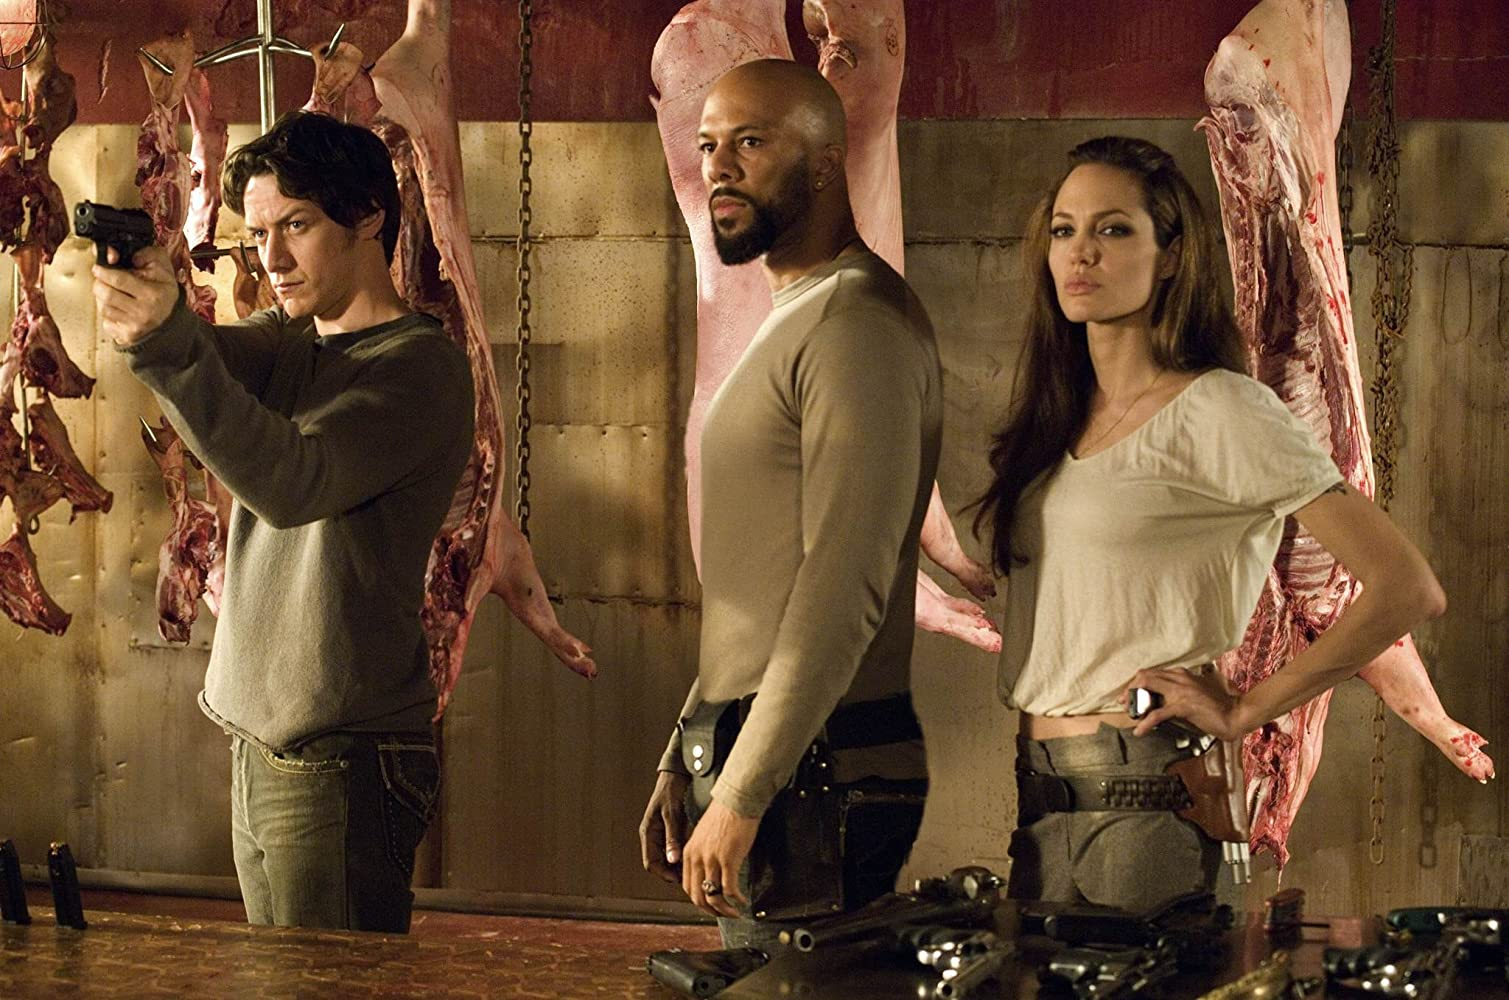 Angelina Jolie, James McAvoy, and Common in Wanted (2008)